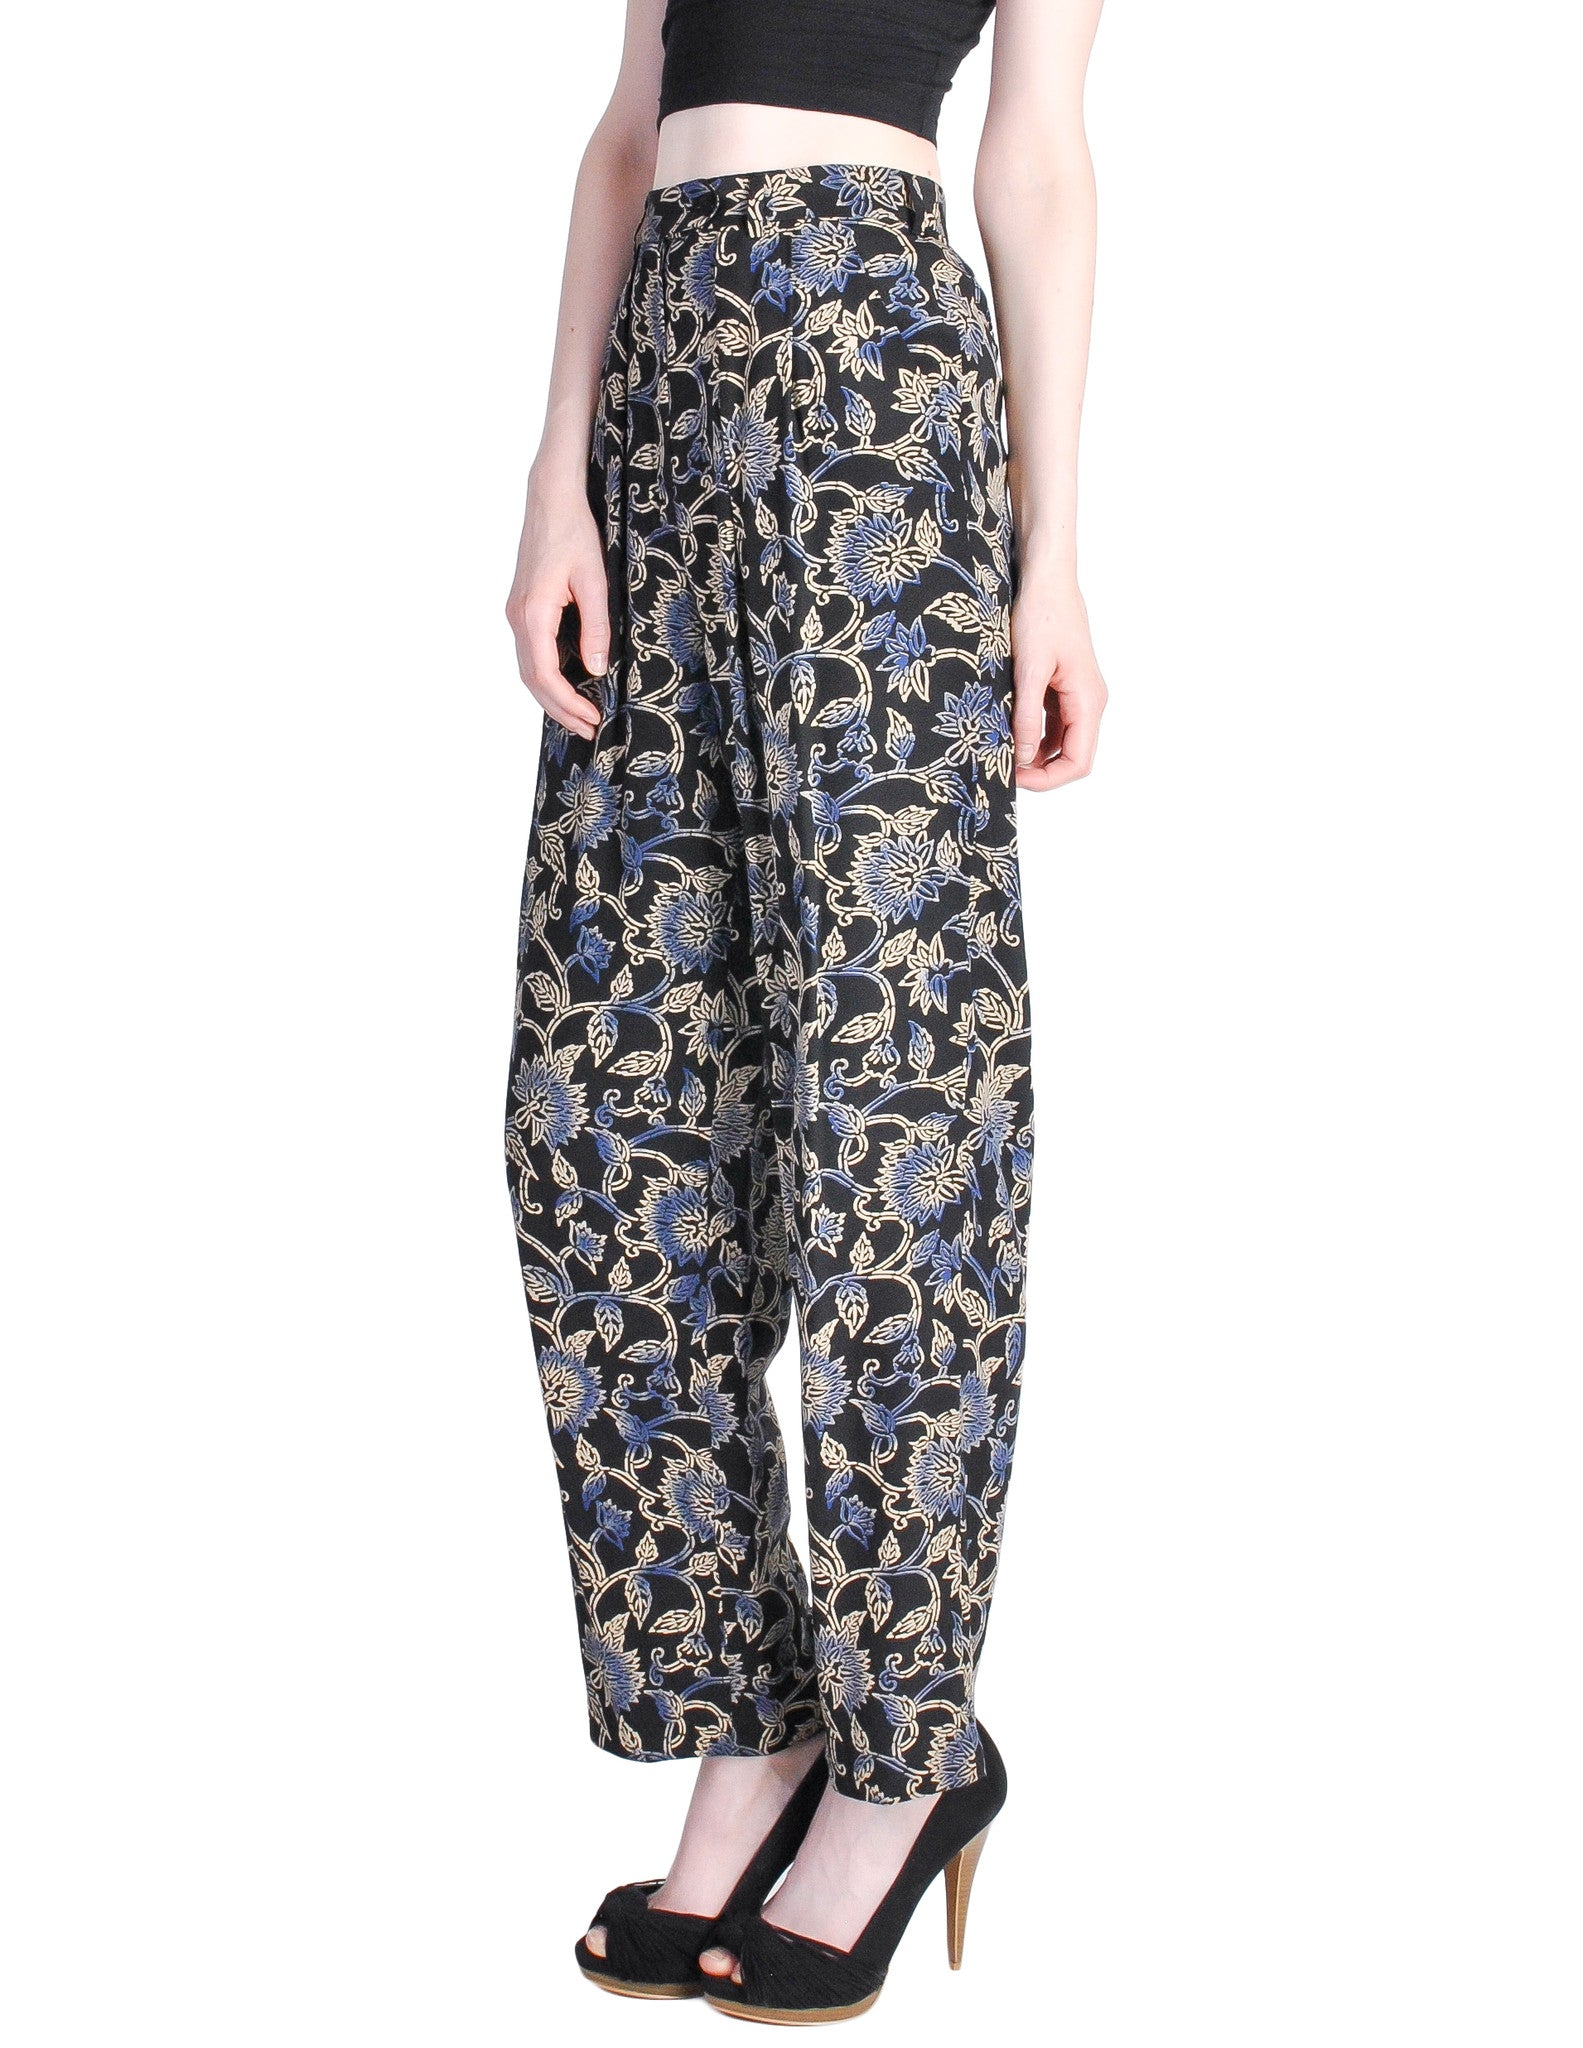 Armani Vintage Black Silk Floral High Waist Pants - Amarcord Vintage Fashion  - 1